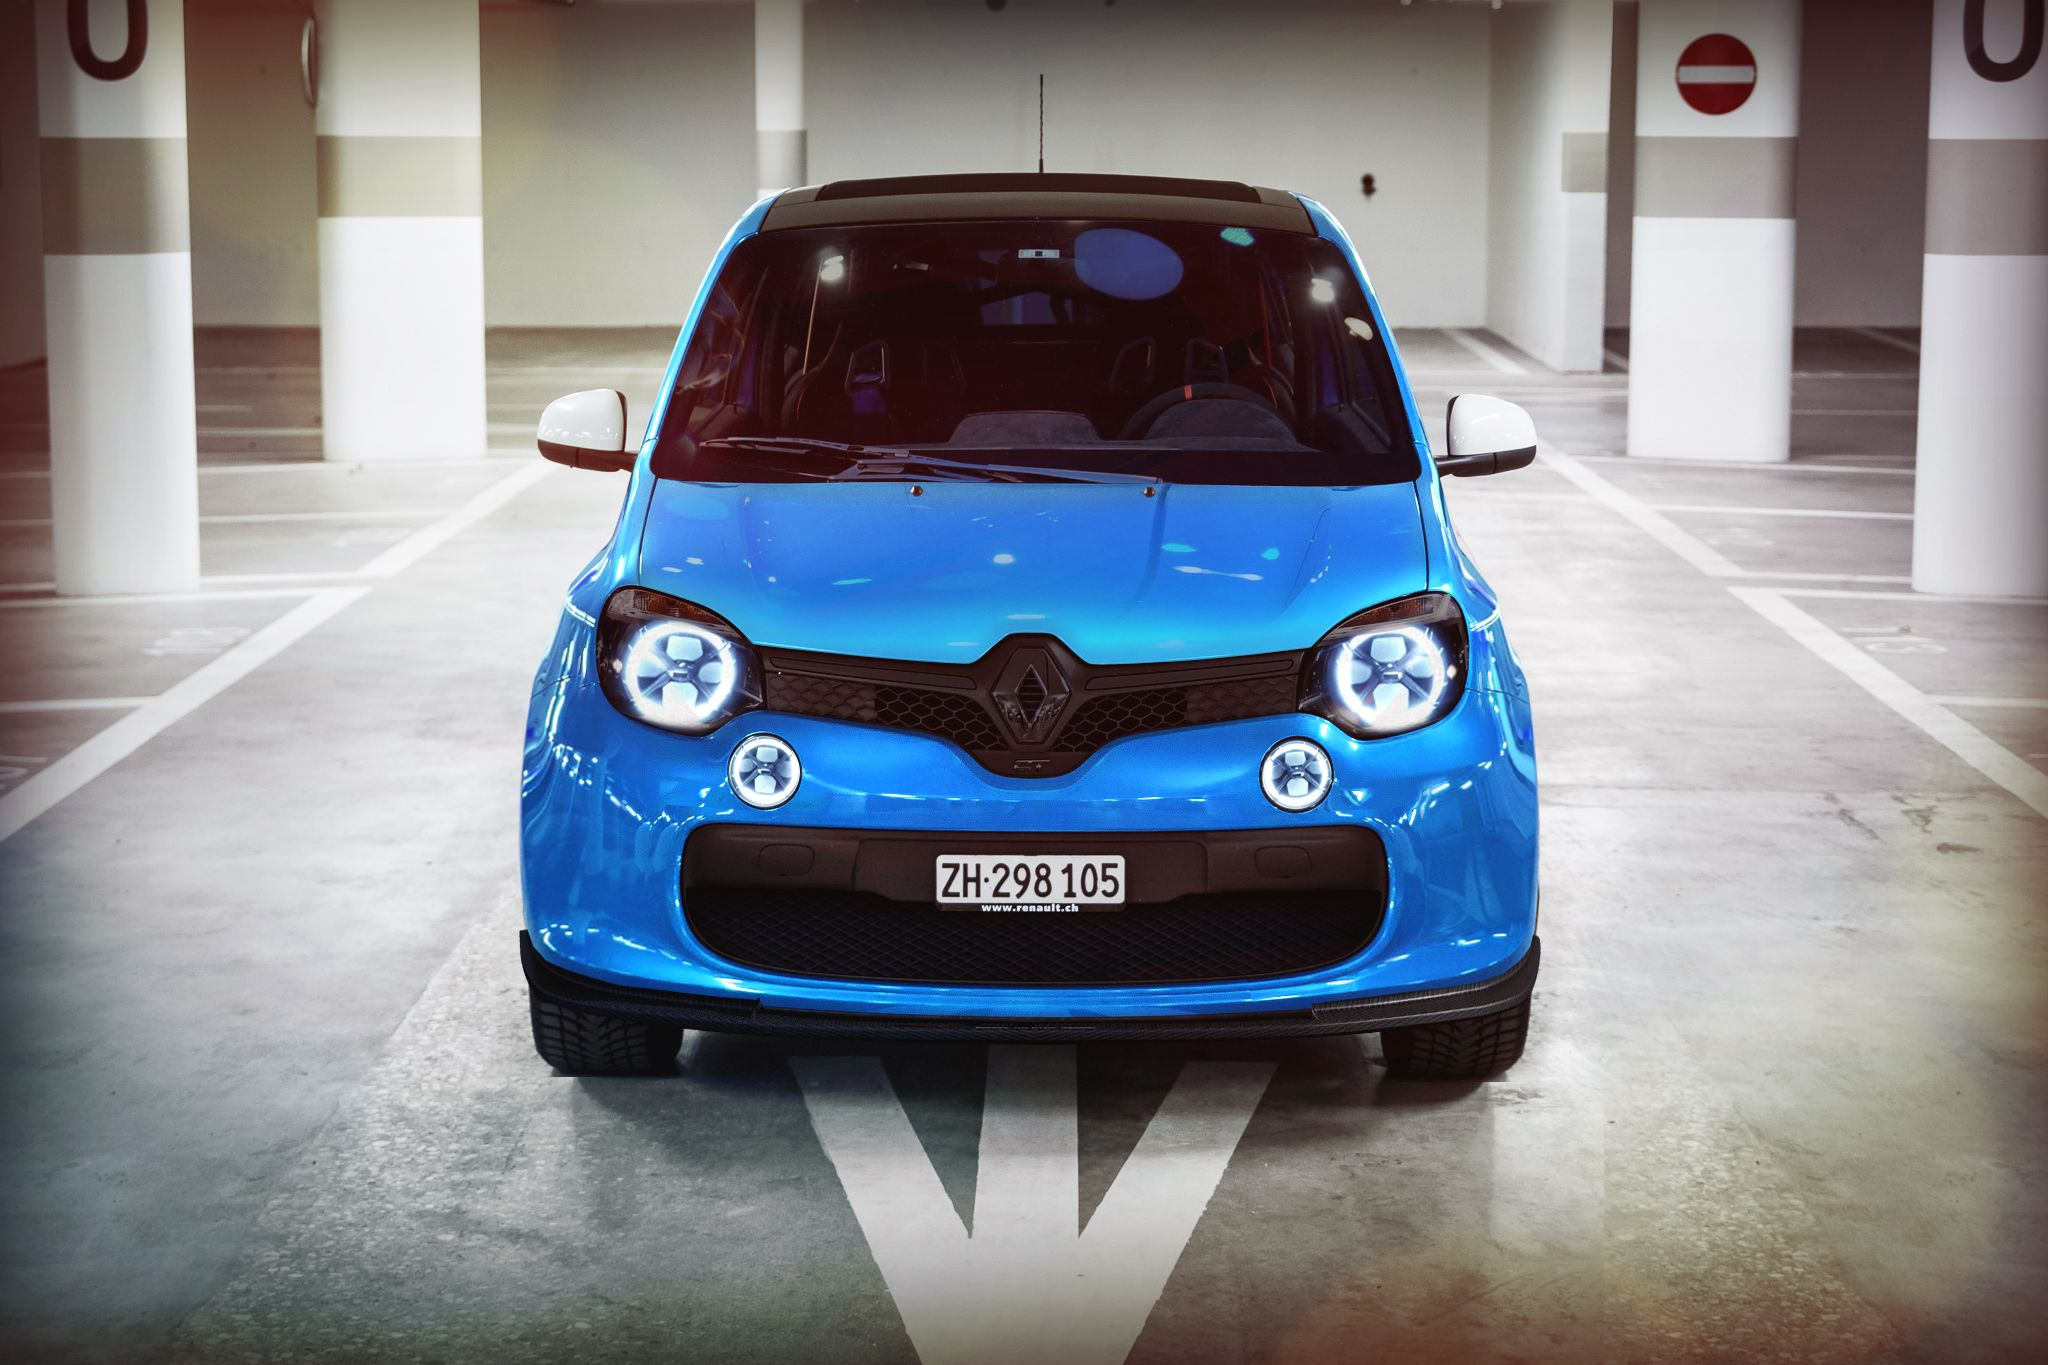 twingo gt twingo 3 tuning cars cars motorcycles vehicles. Black Bedroom Furniture Sets. Home Design Ideas